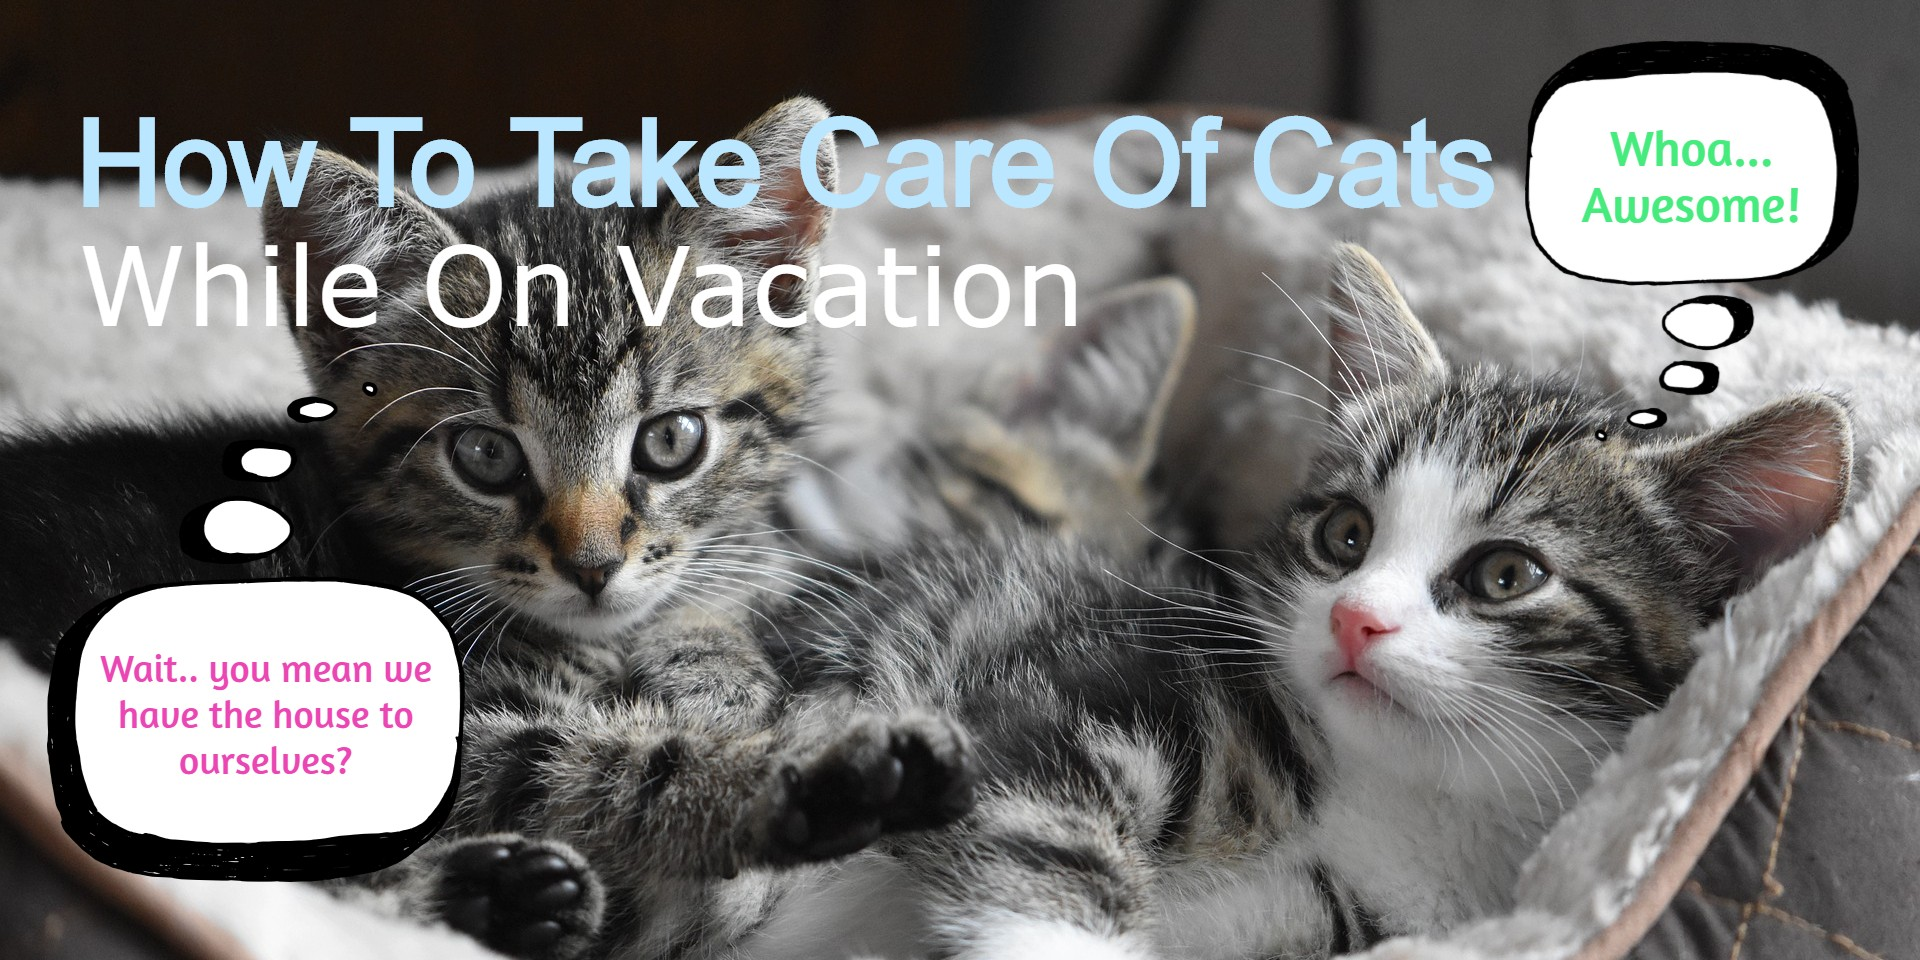 Complete Guide To Leaving Your Cat Home Alone While On Vacation